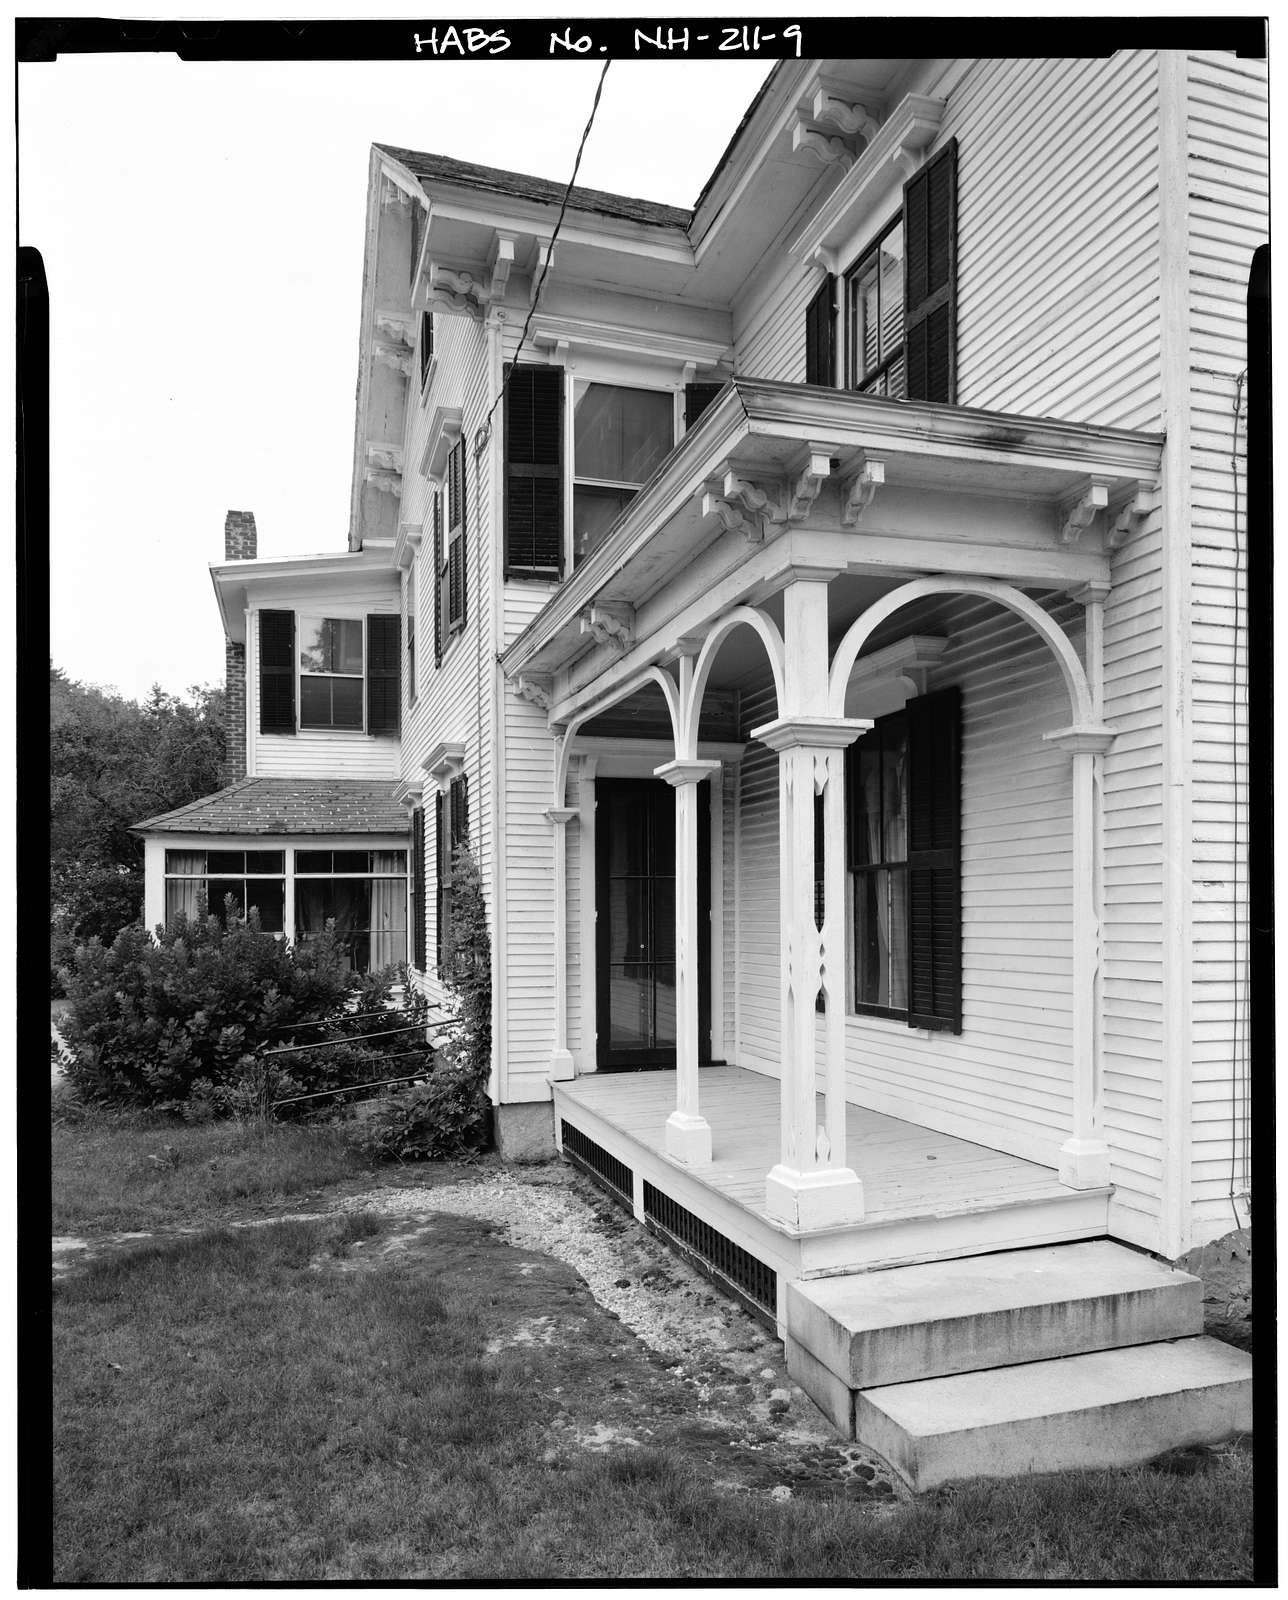 Solon W. Stone House, 15 Frost Street, Marlborough, Cheshire County, NH